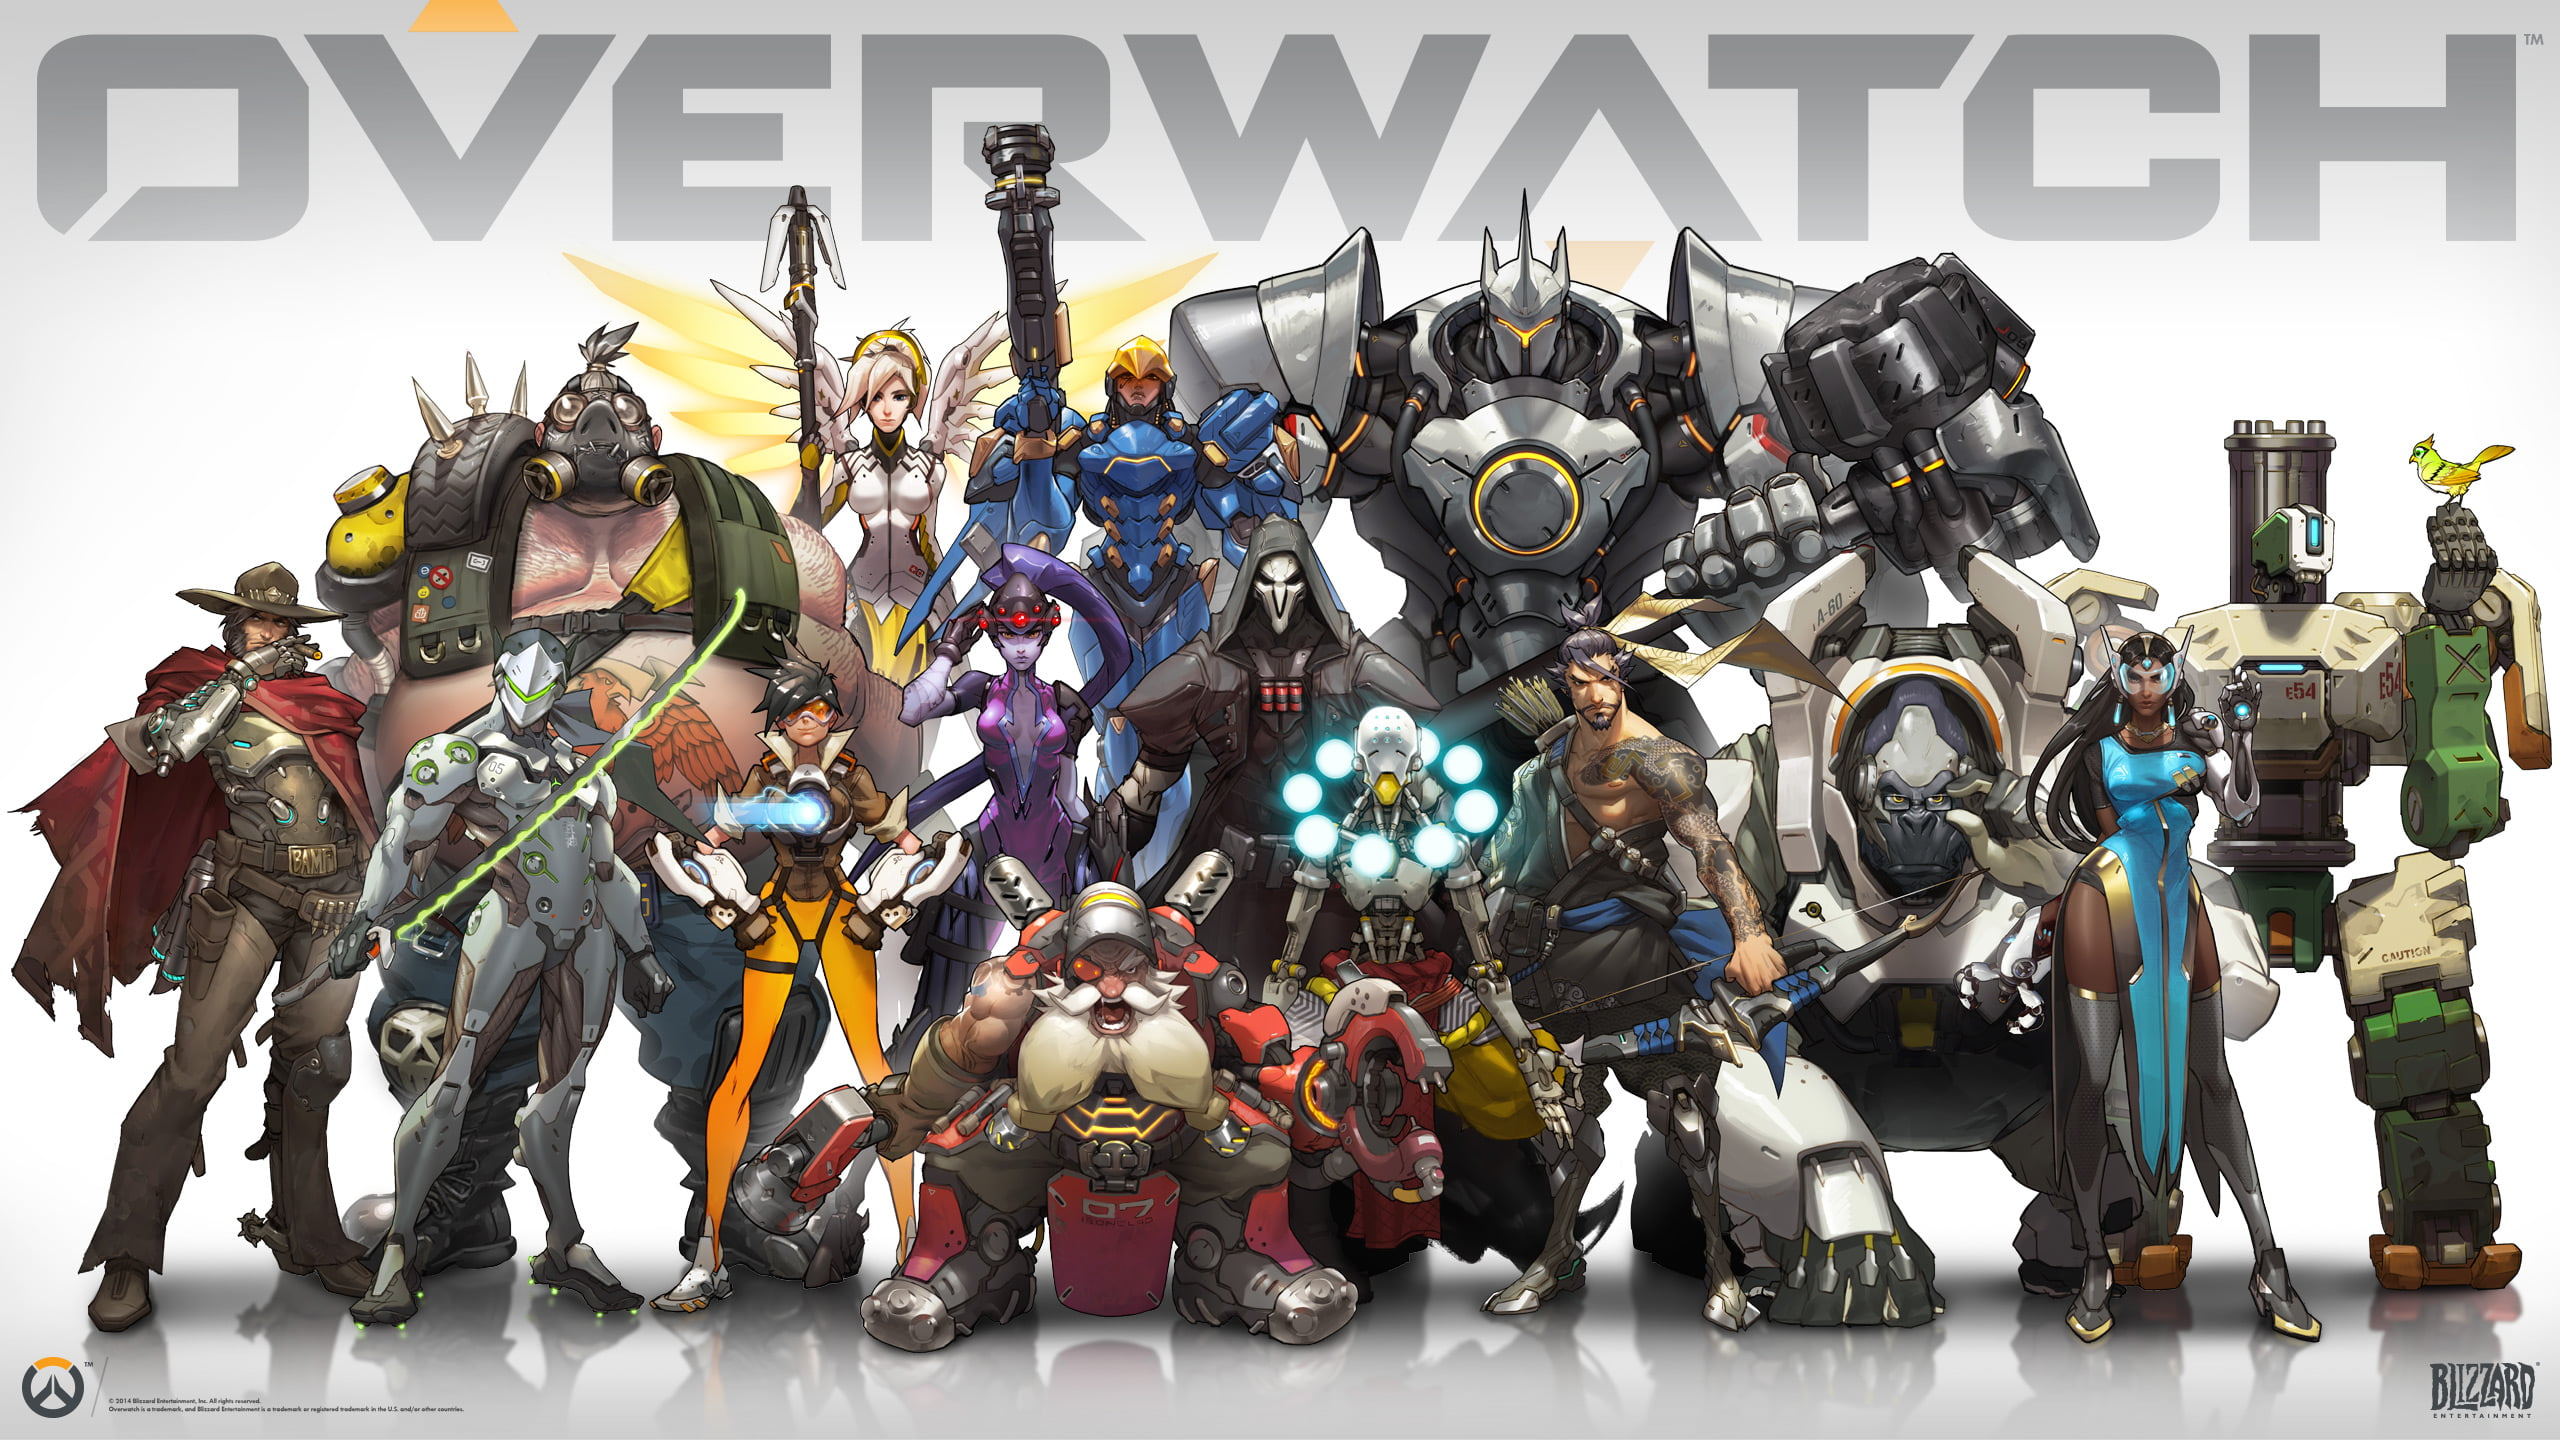 Photo of Blizzard Announces Overwatch at BlizzCon 2014